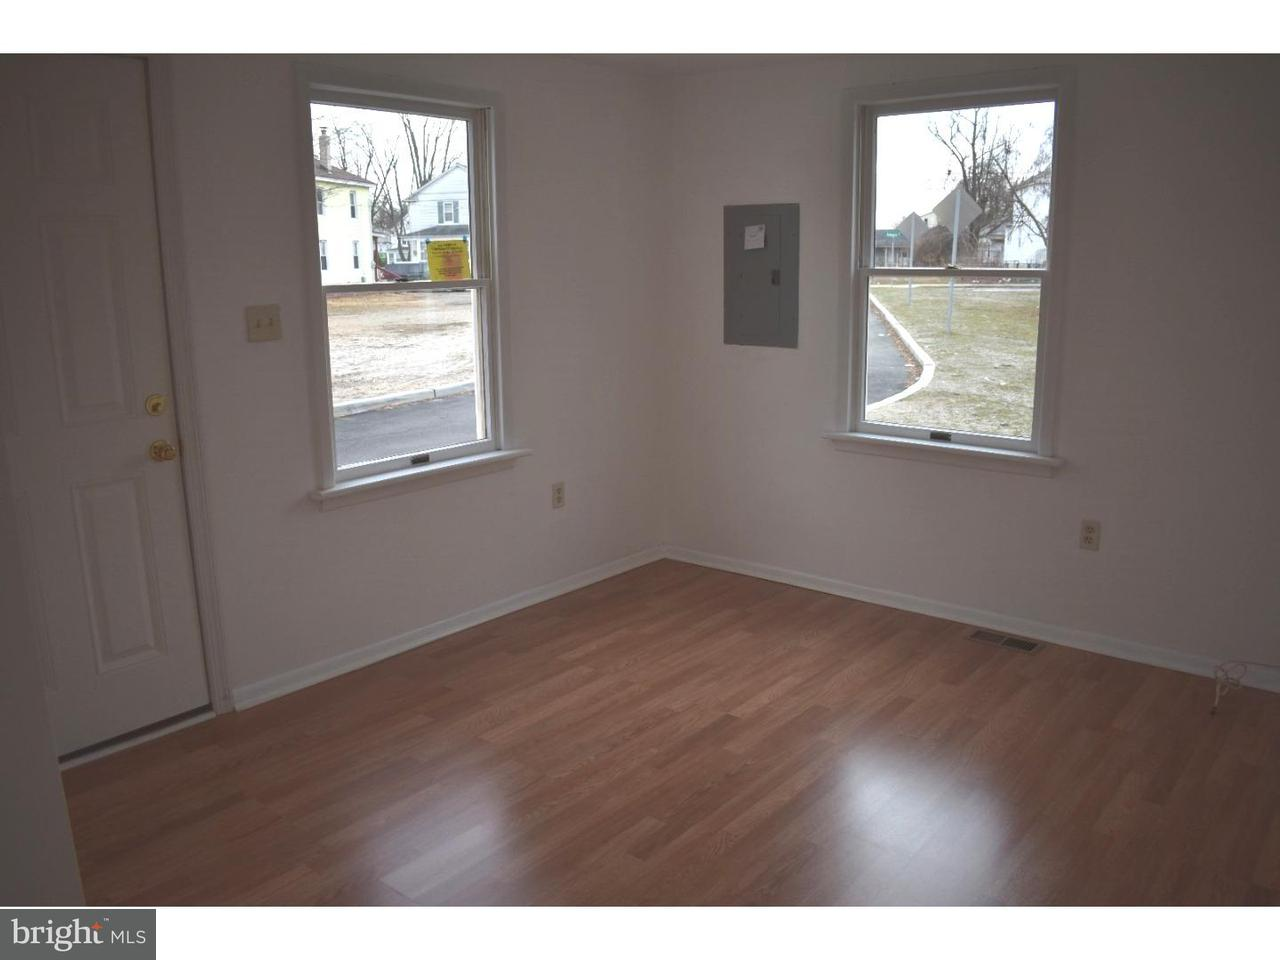 Townhouse for Rent at 1012 HOFFMAN Avenue Paulsboro, New Jersey 08066 United States